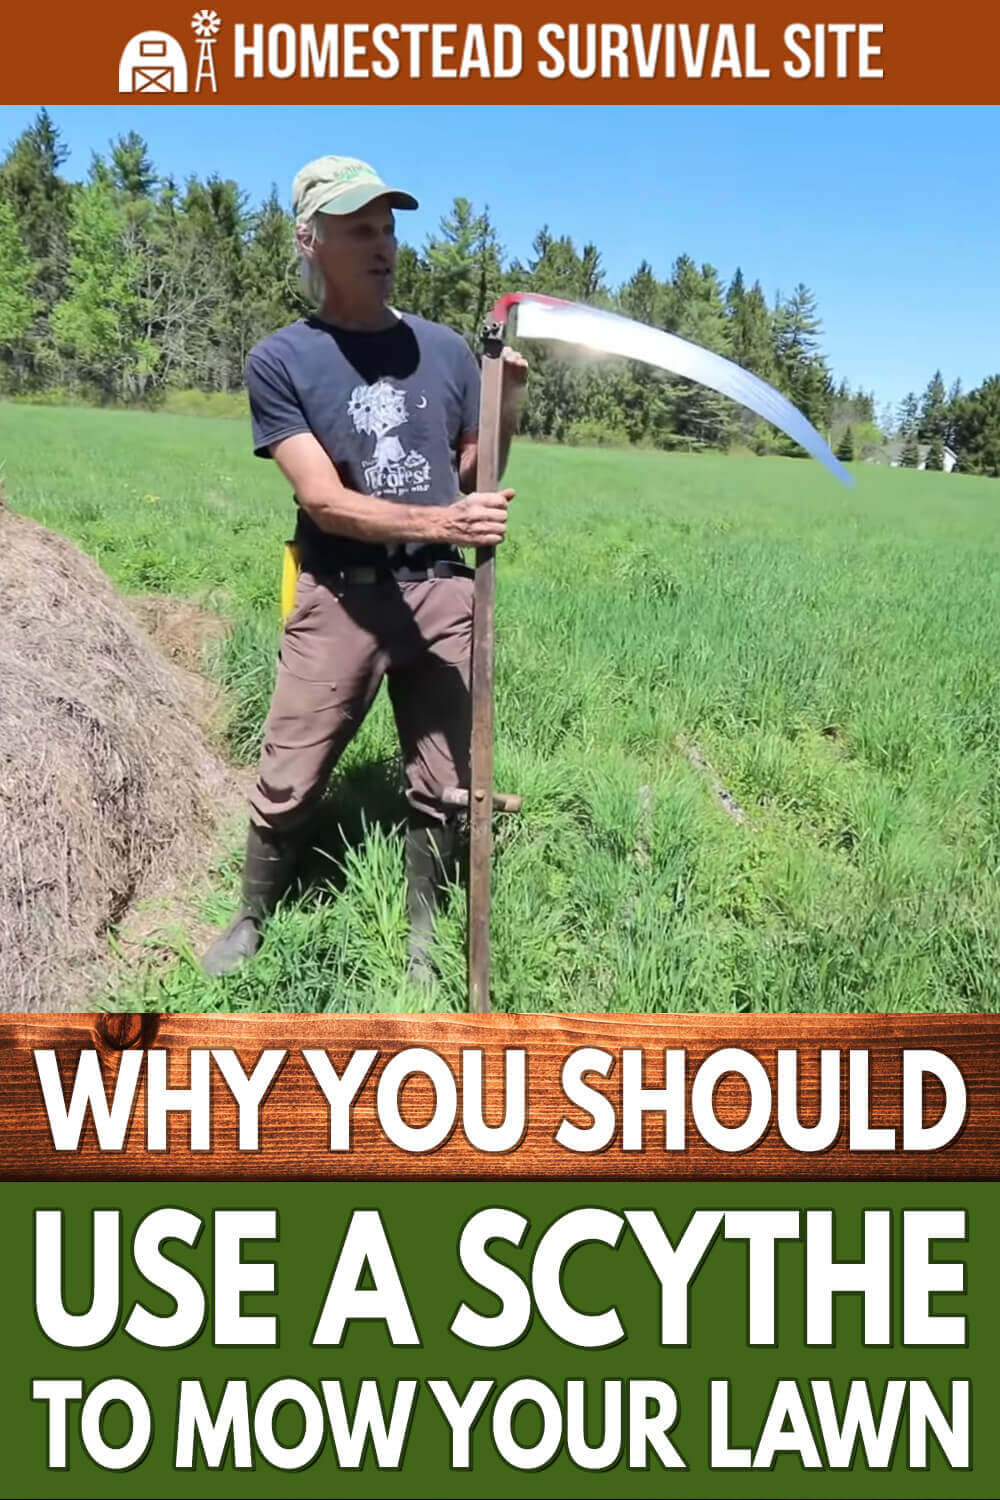 Why You Should Use a Scythe to Mow Your Lawn